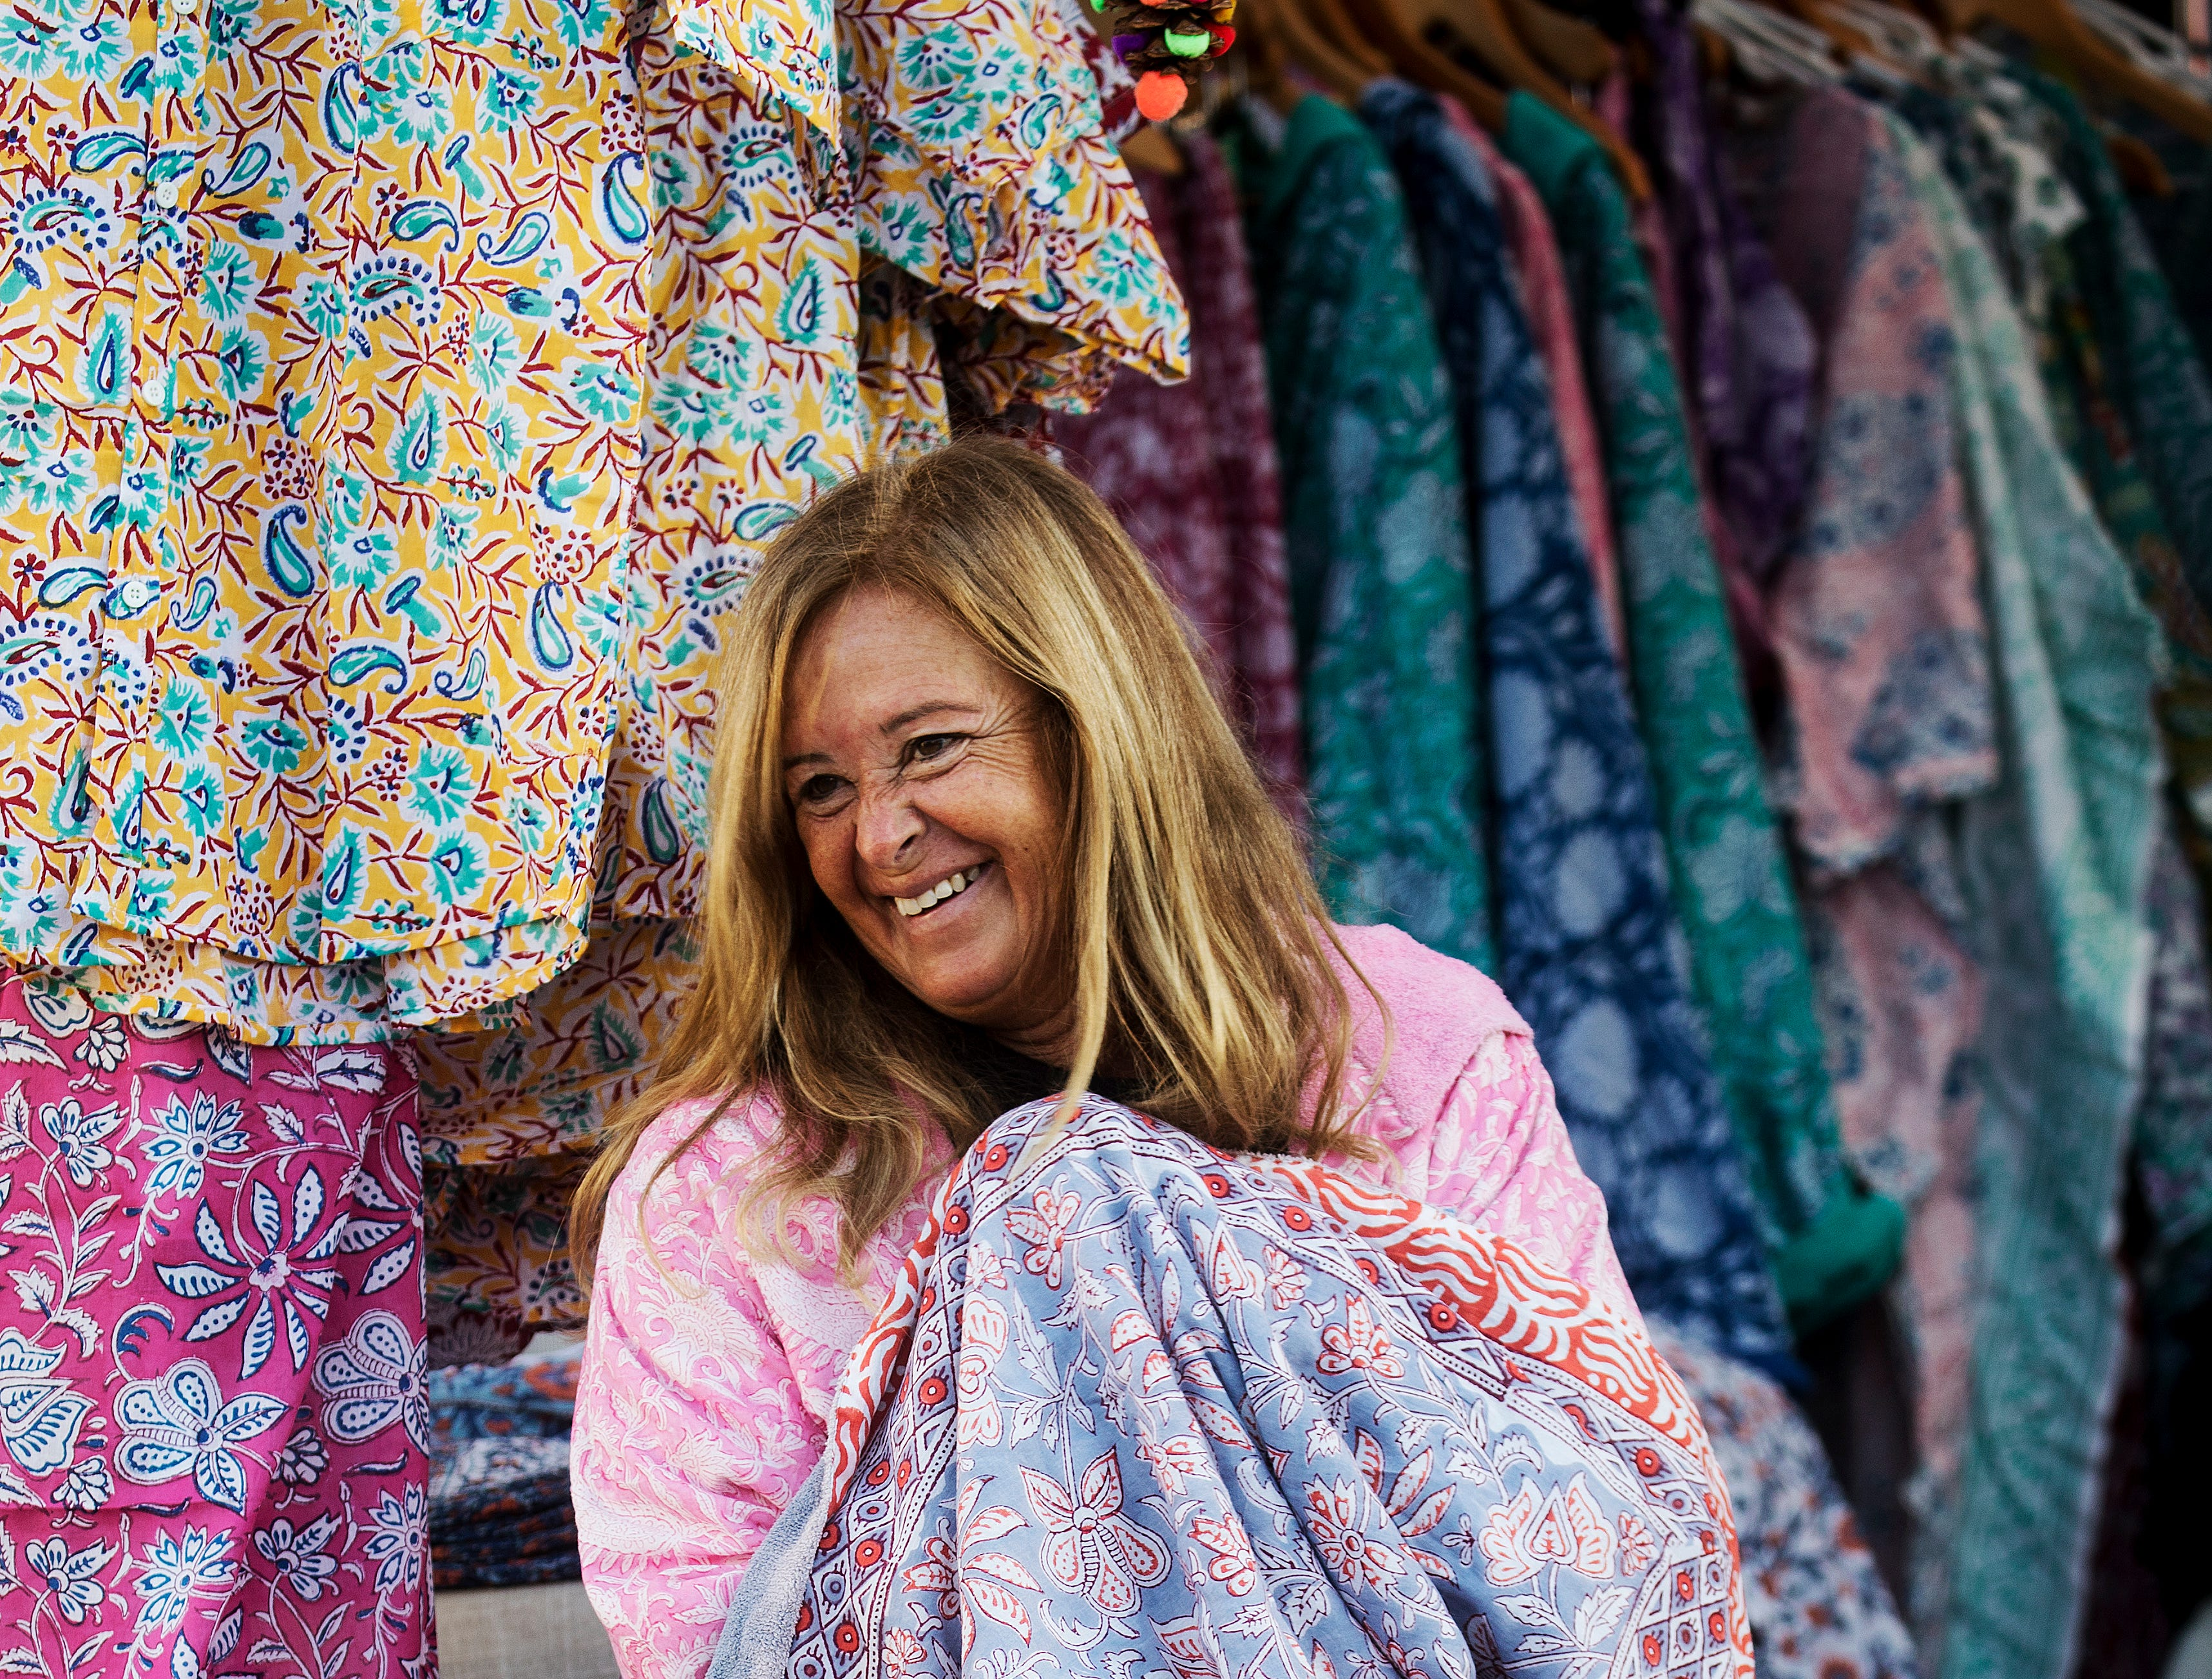 "Nancy Davis, of Holicow, a resort wear business, bundles up while waiting for customers at the Beach Baptist Farmers Market on Fort Myers Beach on Wednesday 11/28/2018. A cold front has made its way to Southwest Florida. Temps are in the 40's and 50's. The farmers market runs from October to May and is located at the Beach Baptist Church on Wednesdays from 8-1 and at Santini Plaza on Tuesday's and Thursdays from 8-1. Davis said "" It's very cold this morning, I'm waiting for the sun to come around the corner."""